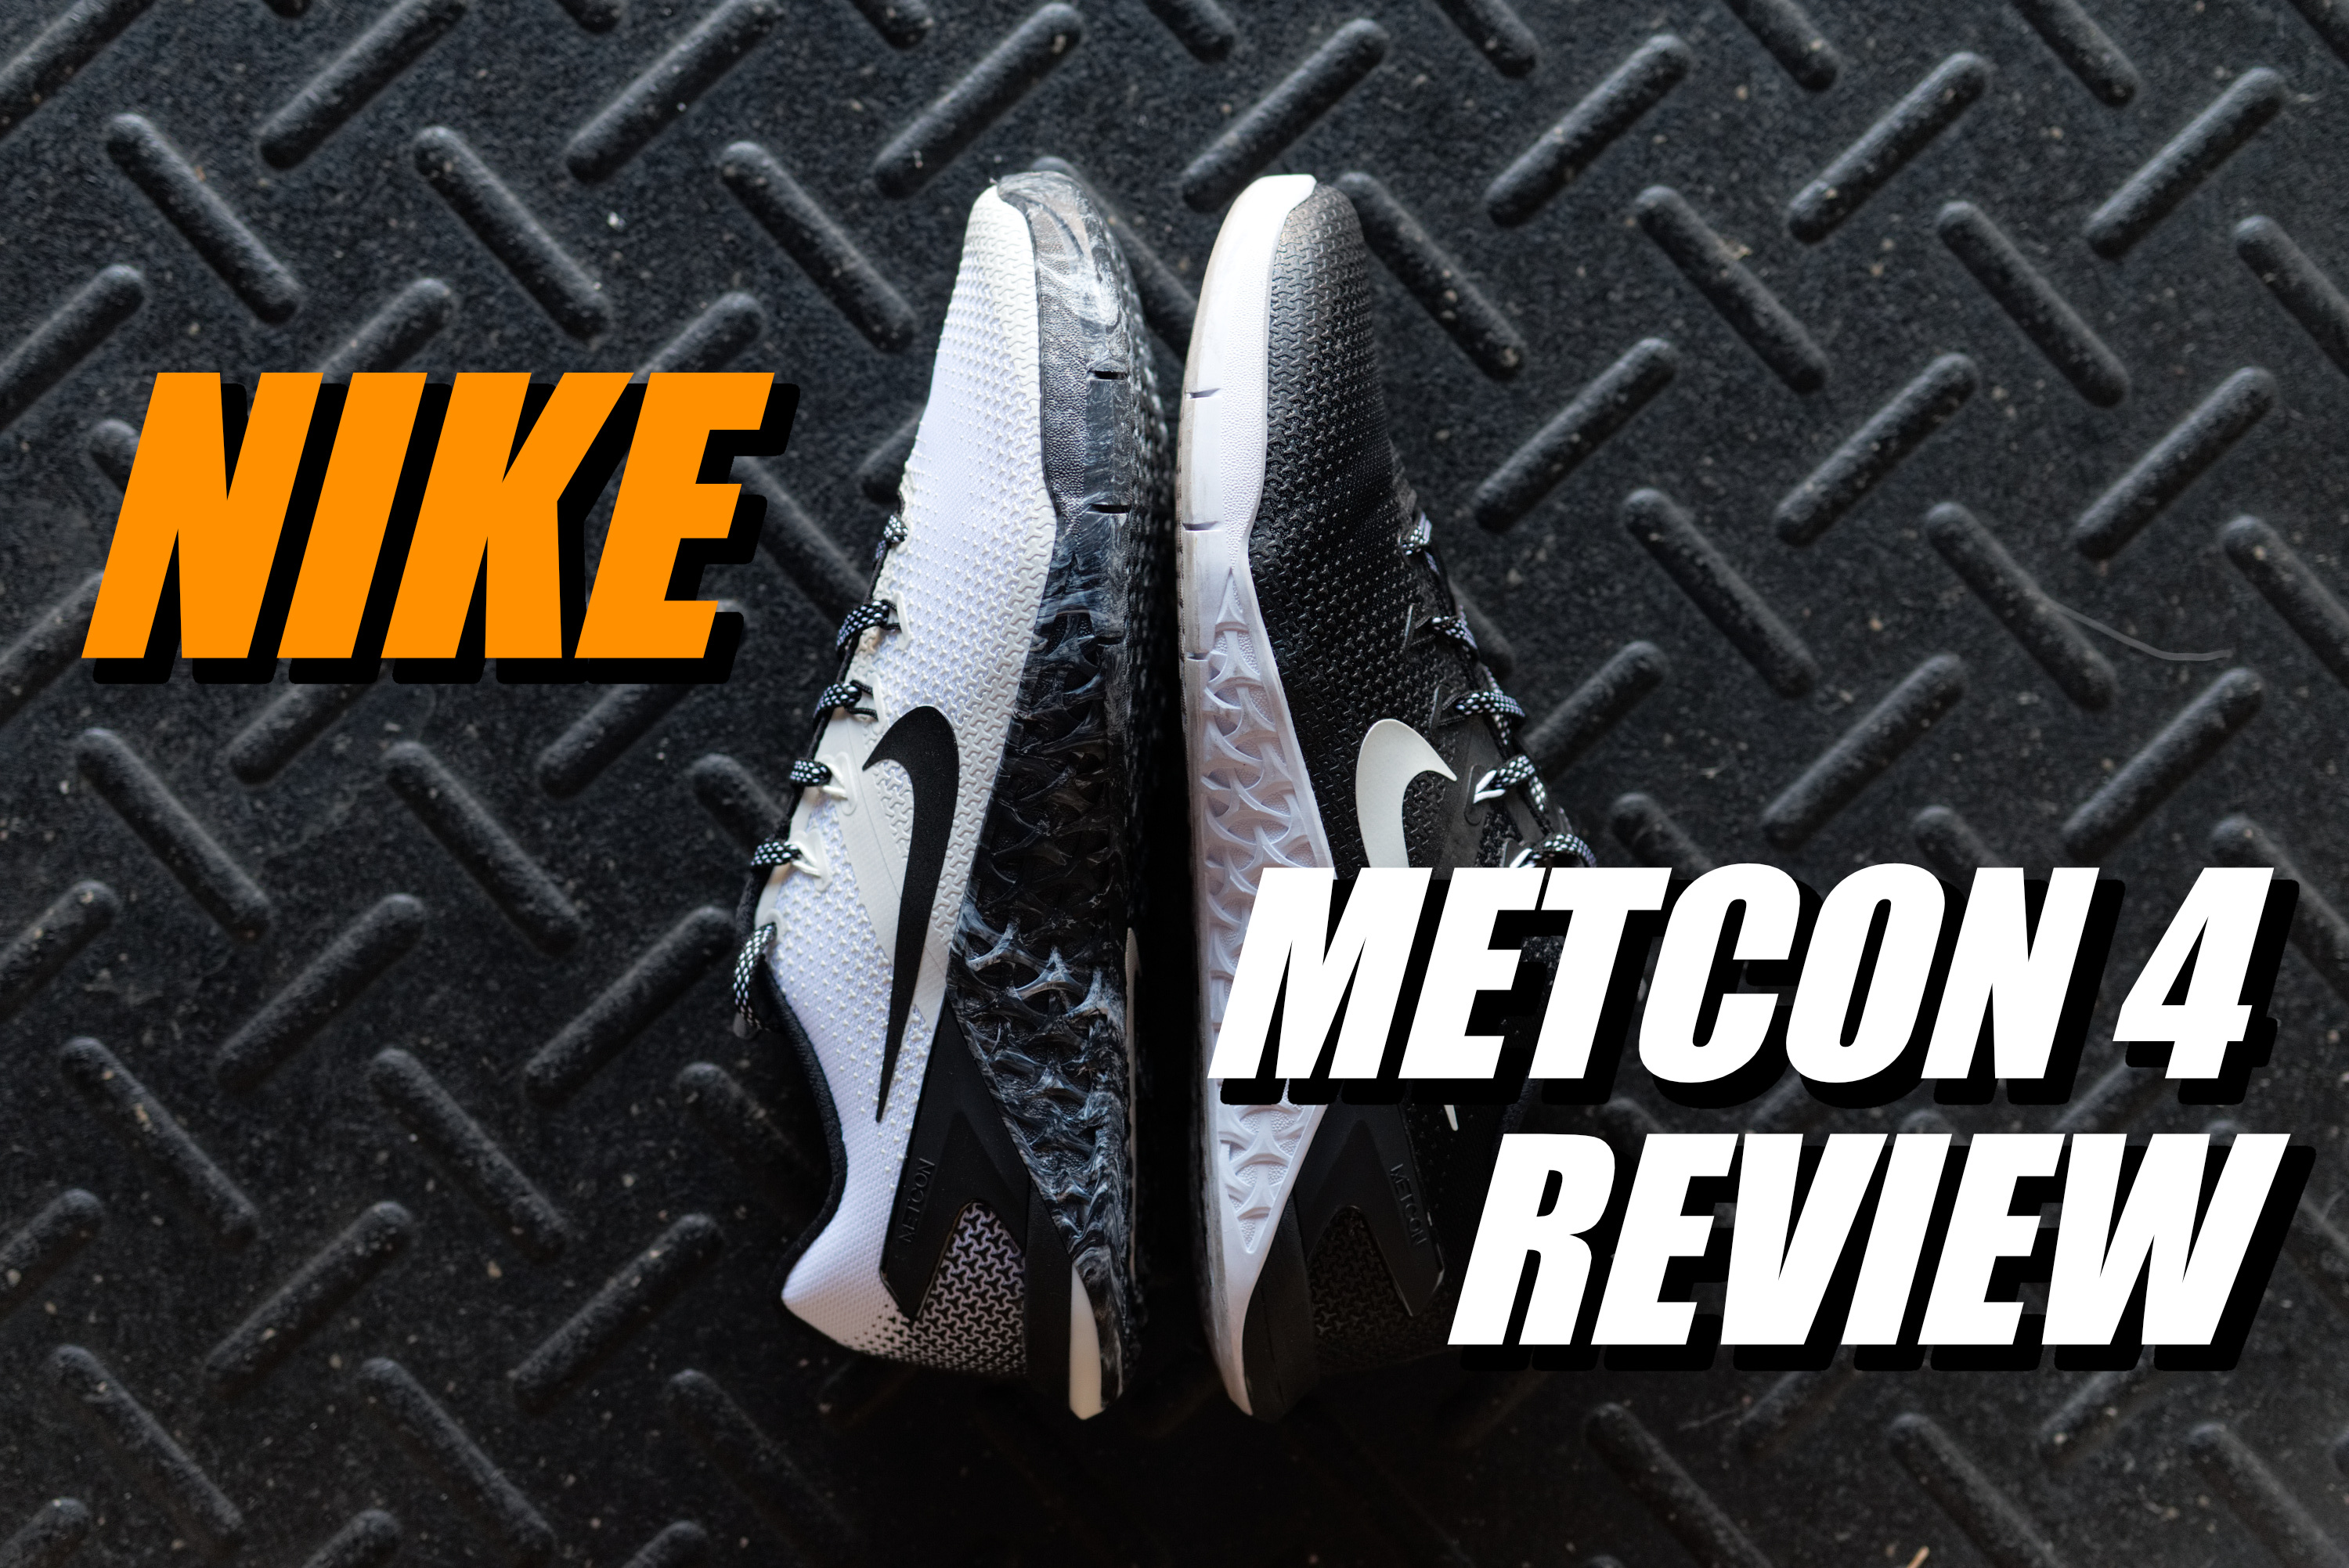 Nike METCON 4 Review |As Many Reviews